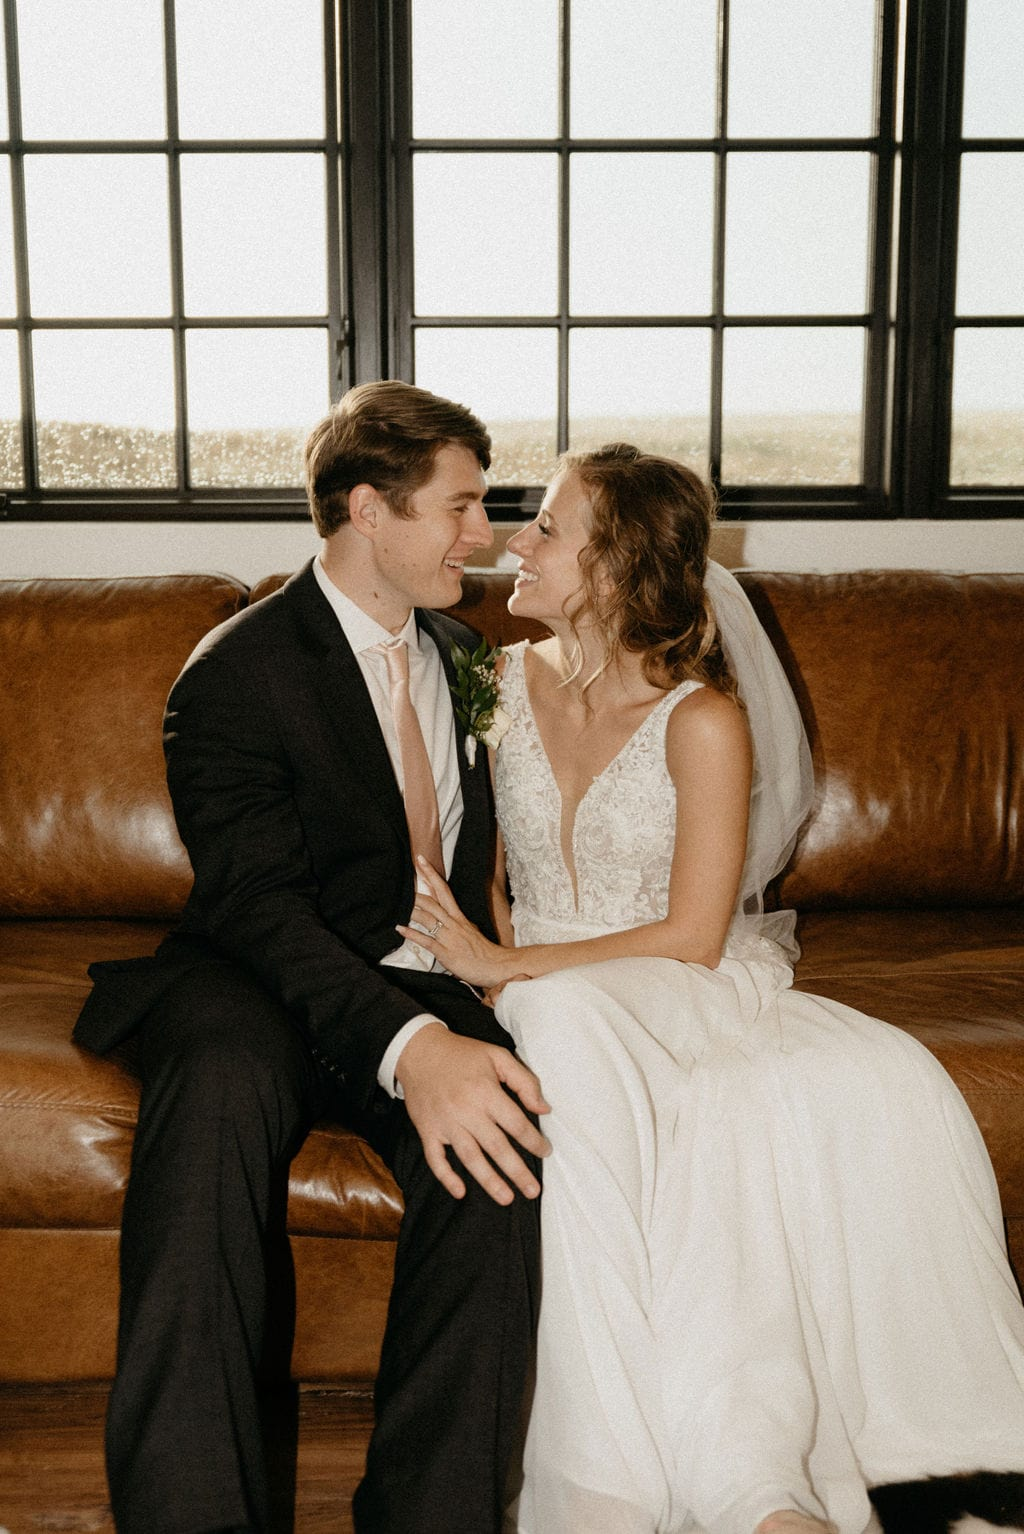 Indoor Vogue inspired Couples Portraits on a Rainy Wedding Day